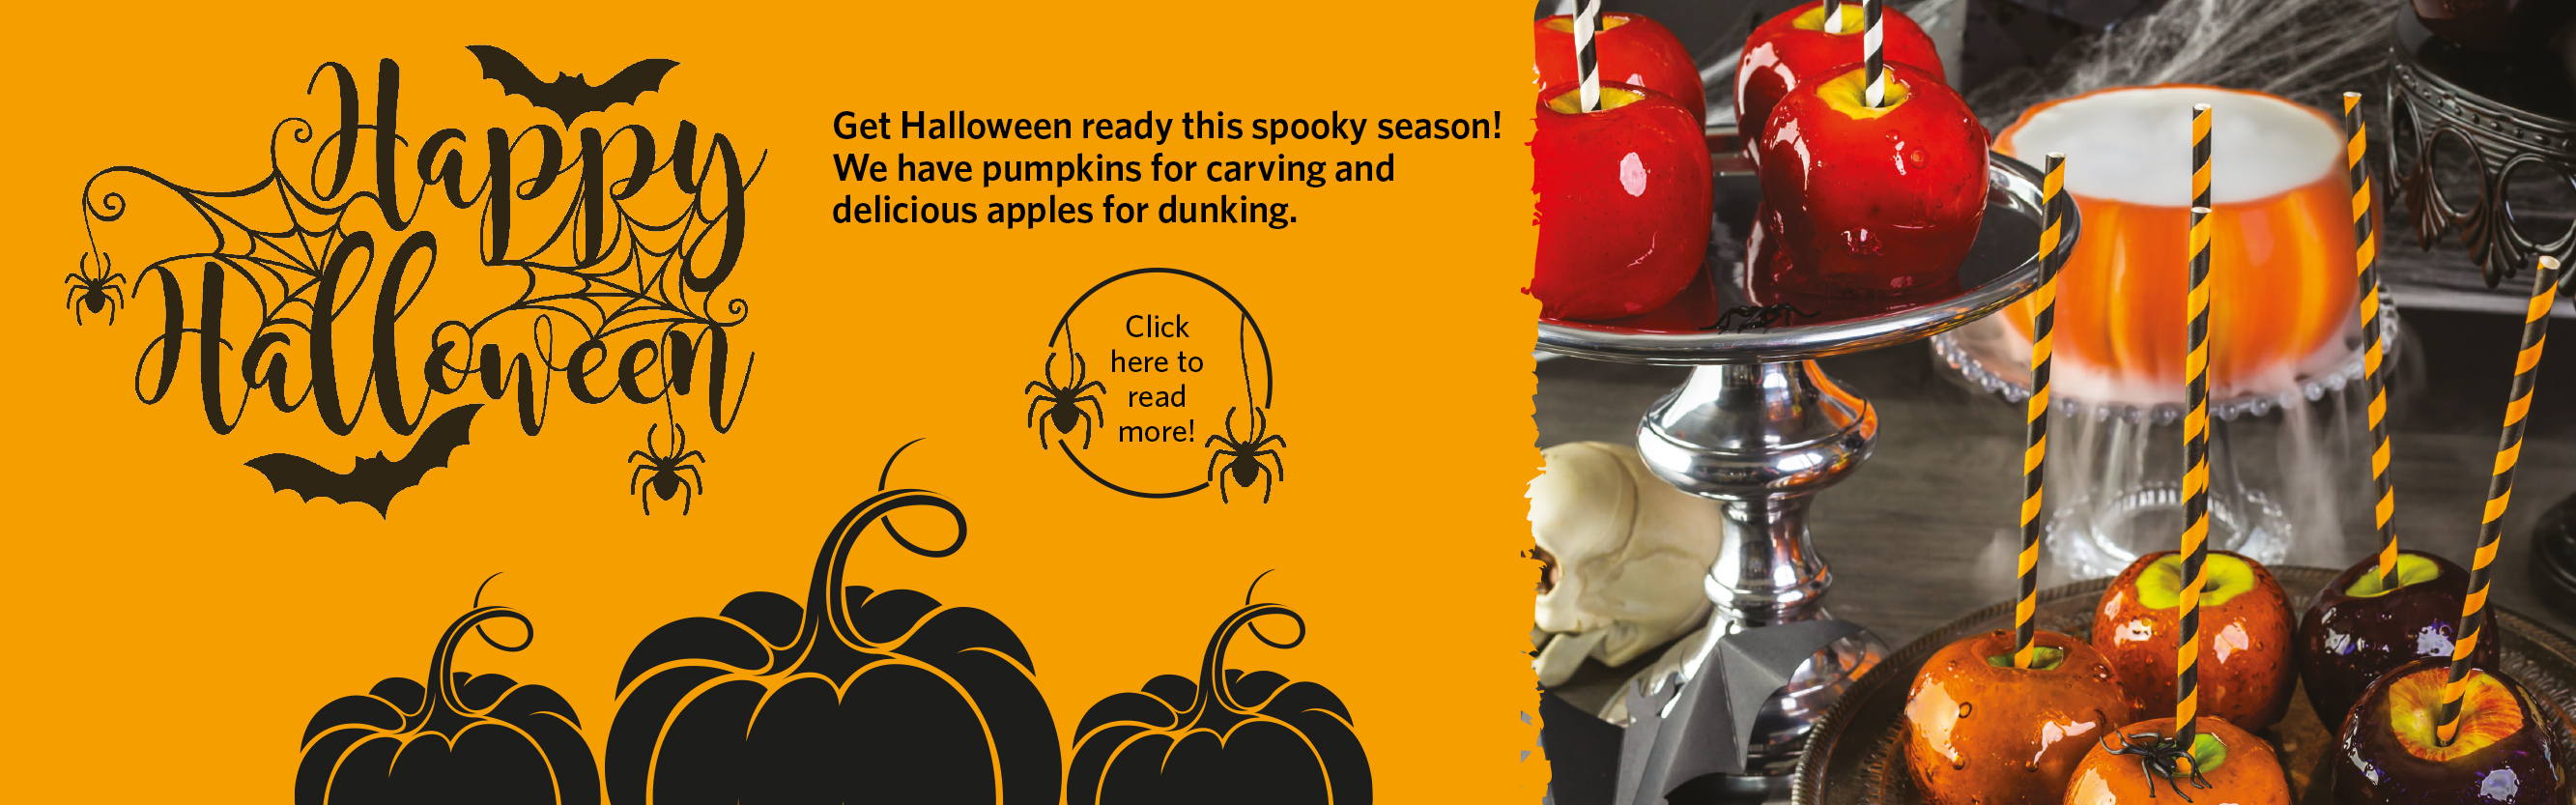 Pioneer Foodservice | Halloween | pumpkins | toffee apples | Carlisle, Cumbria